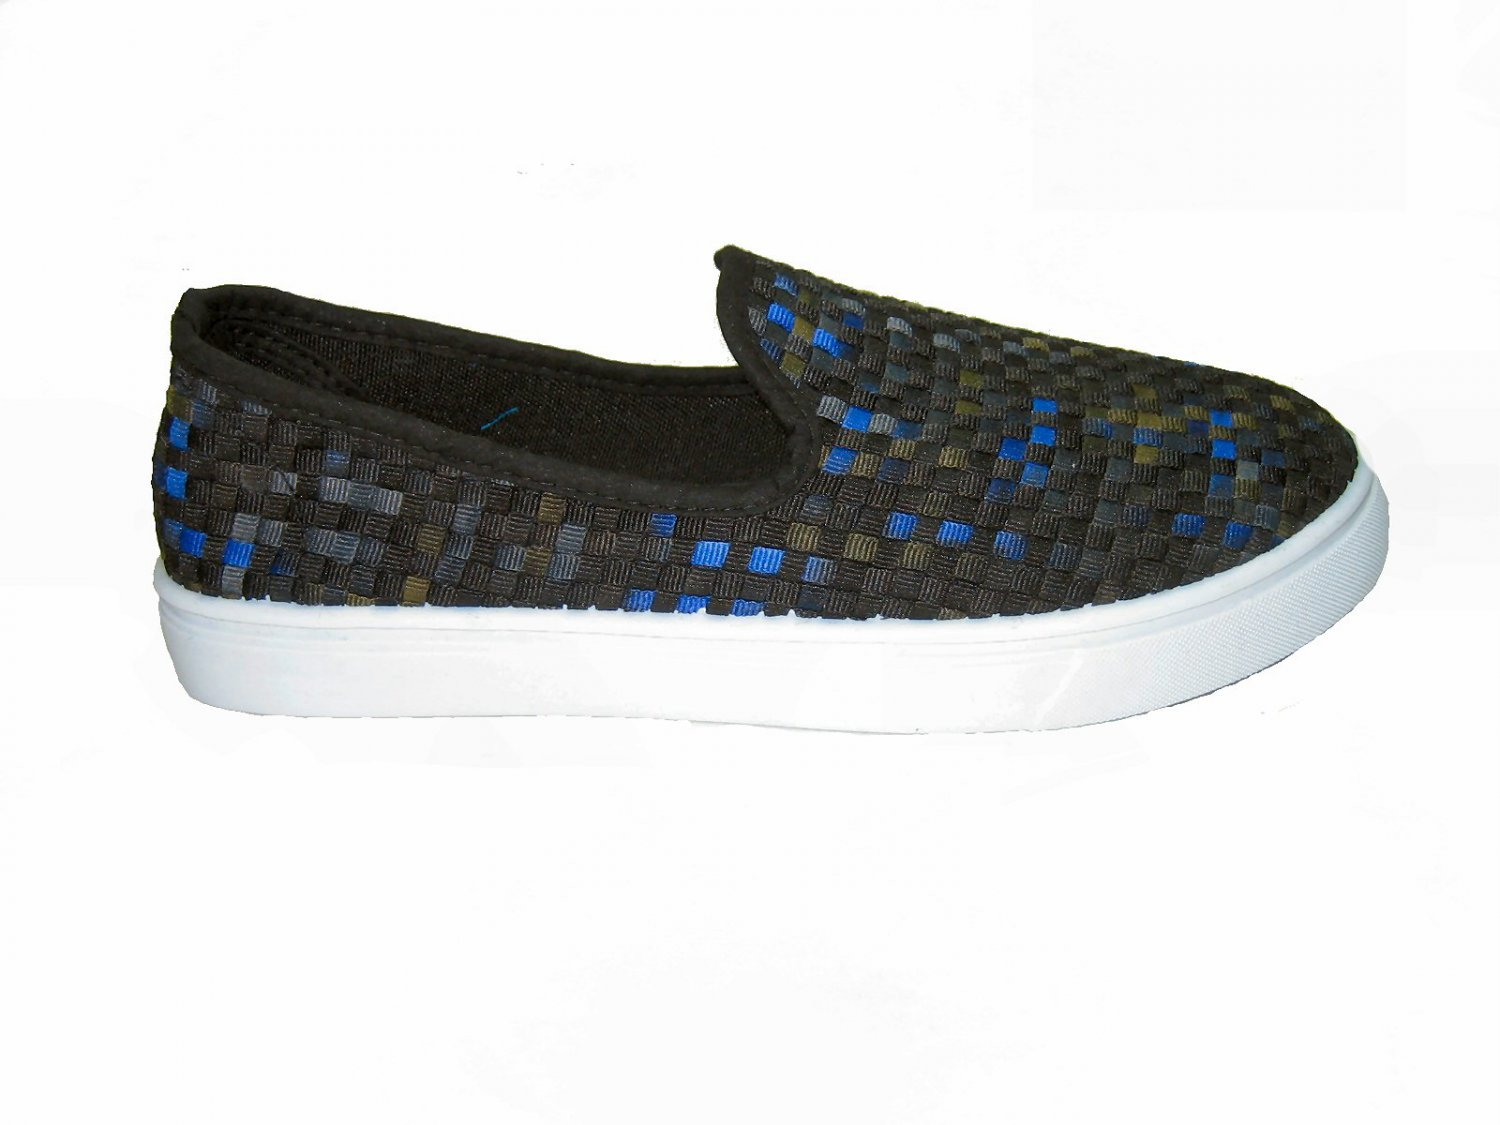 Top Moda AD-53 women's vegan slip on sneakers comfort flats shoes weave pattern black multi size 9